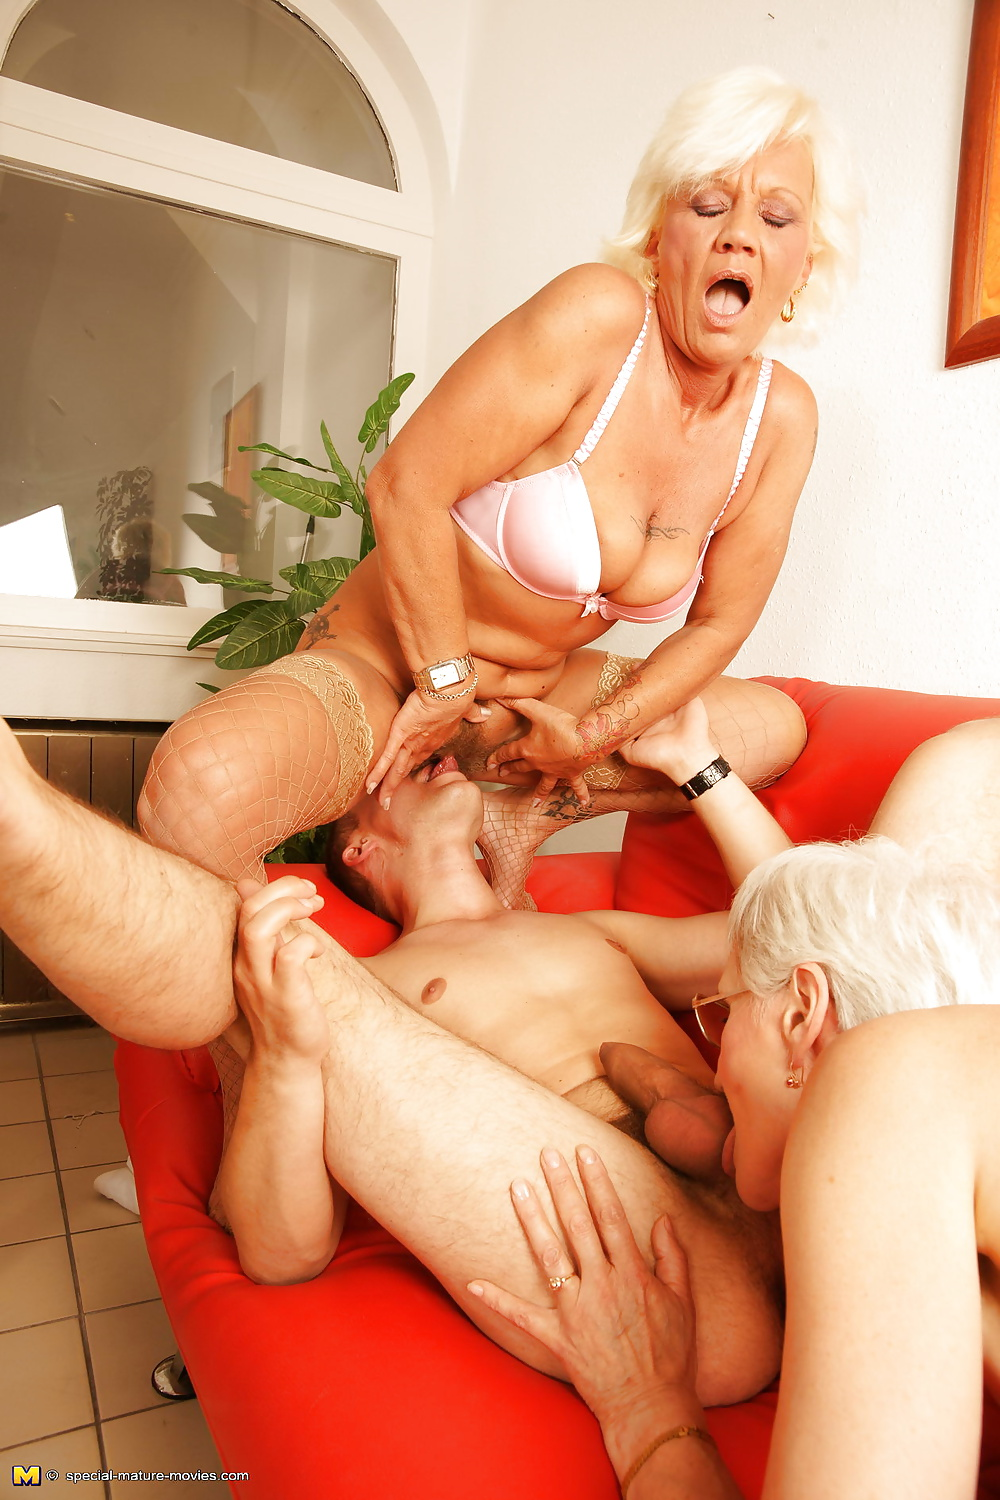 Granny orgy videos, redhead guy and black girl porn